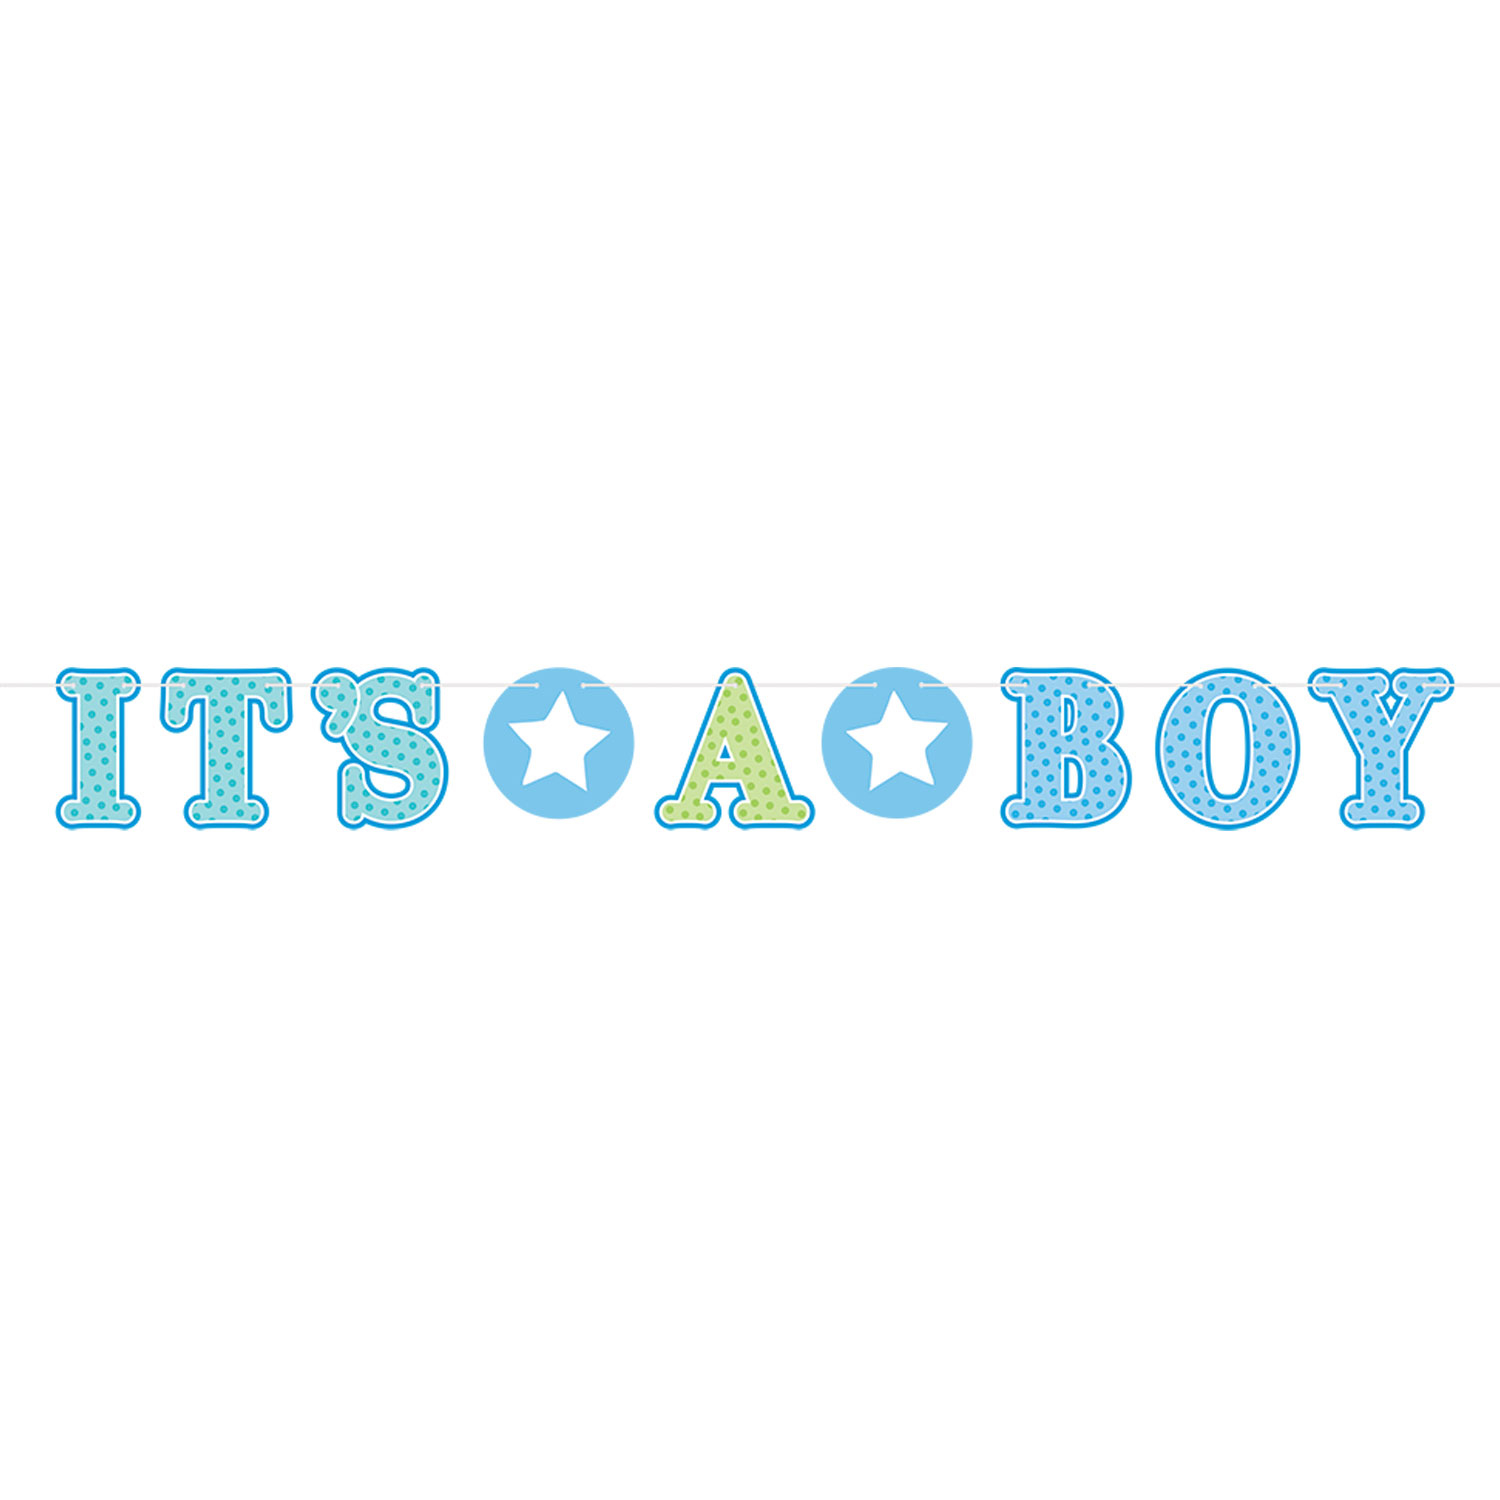 Welcome Home Baby Boy Quotes: Welcome Baby Boy Illustrated Letter Banner